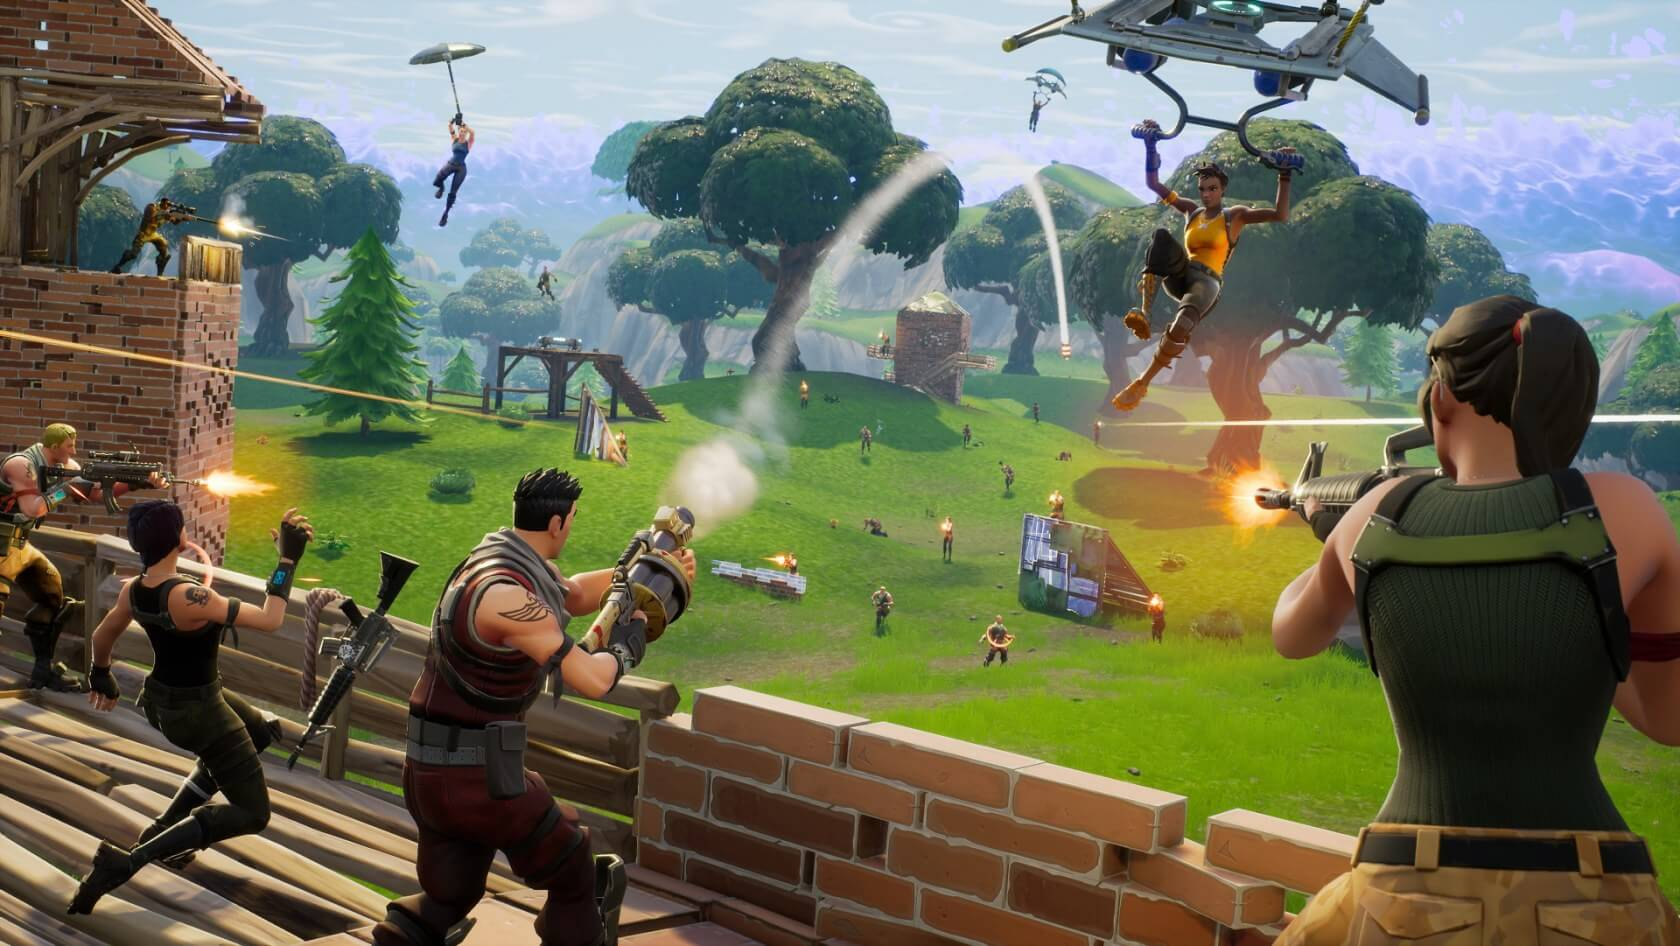 Epic Games files a lawsuit against Apple following Fortnite's App Store removal